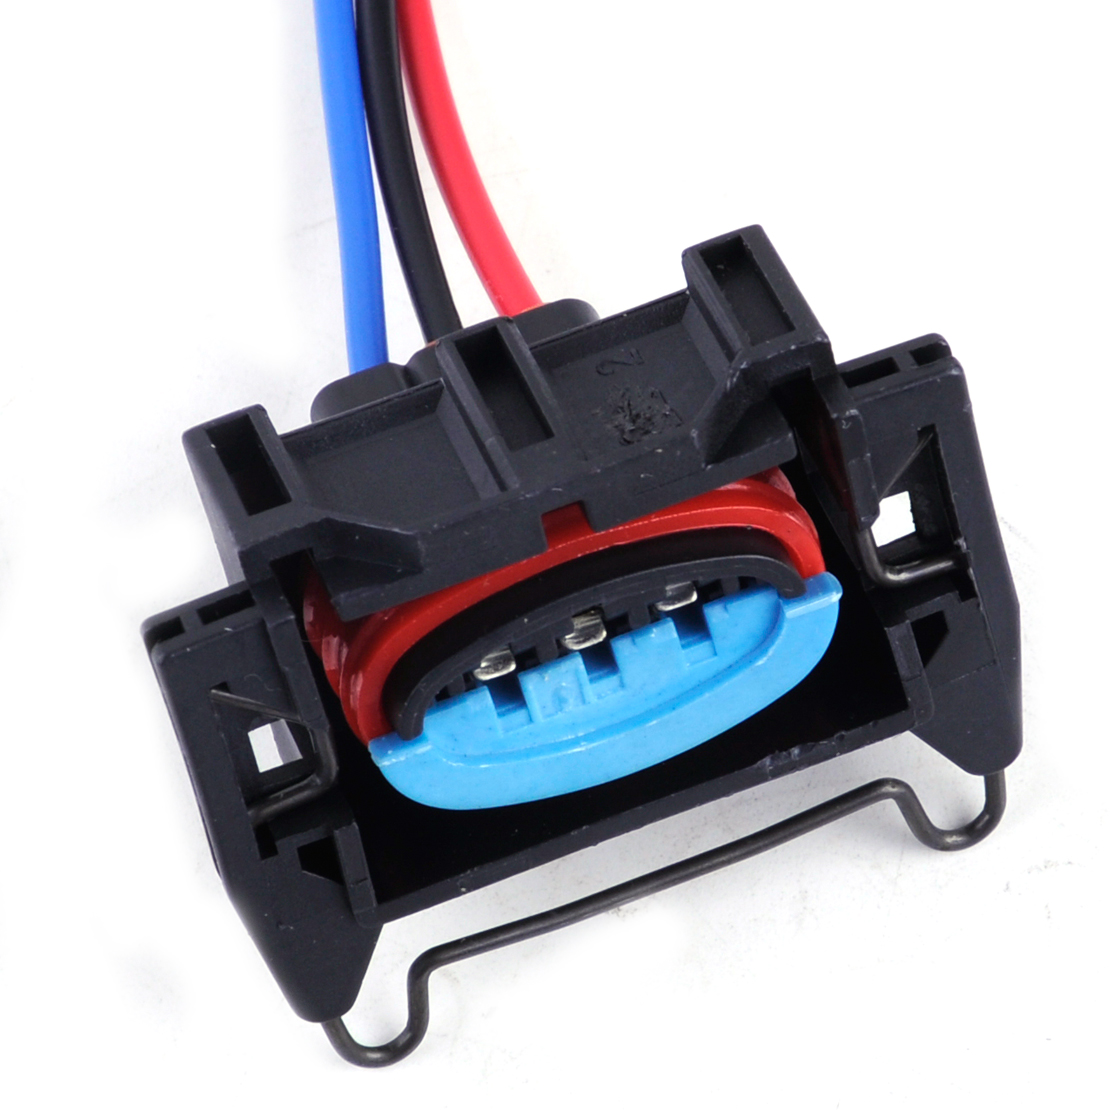 Citall New Ignition Coil Pack Wiring Harness Connector 645 302 Ford Contour Engine 3u2z14s411tna 1p1727 57 5508 For Focus Ranger Mazda In From